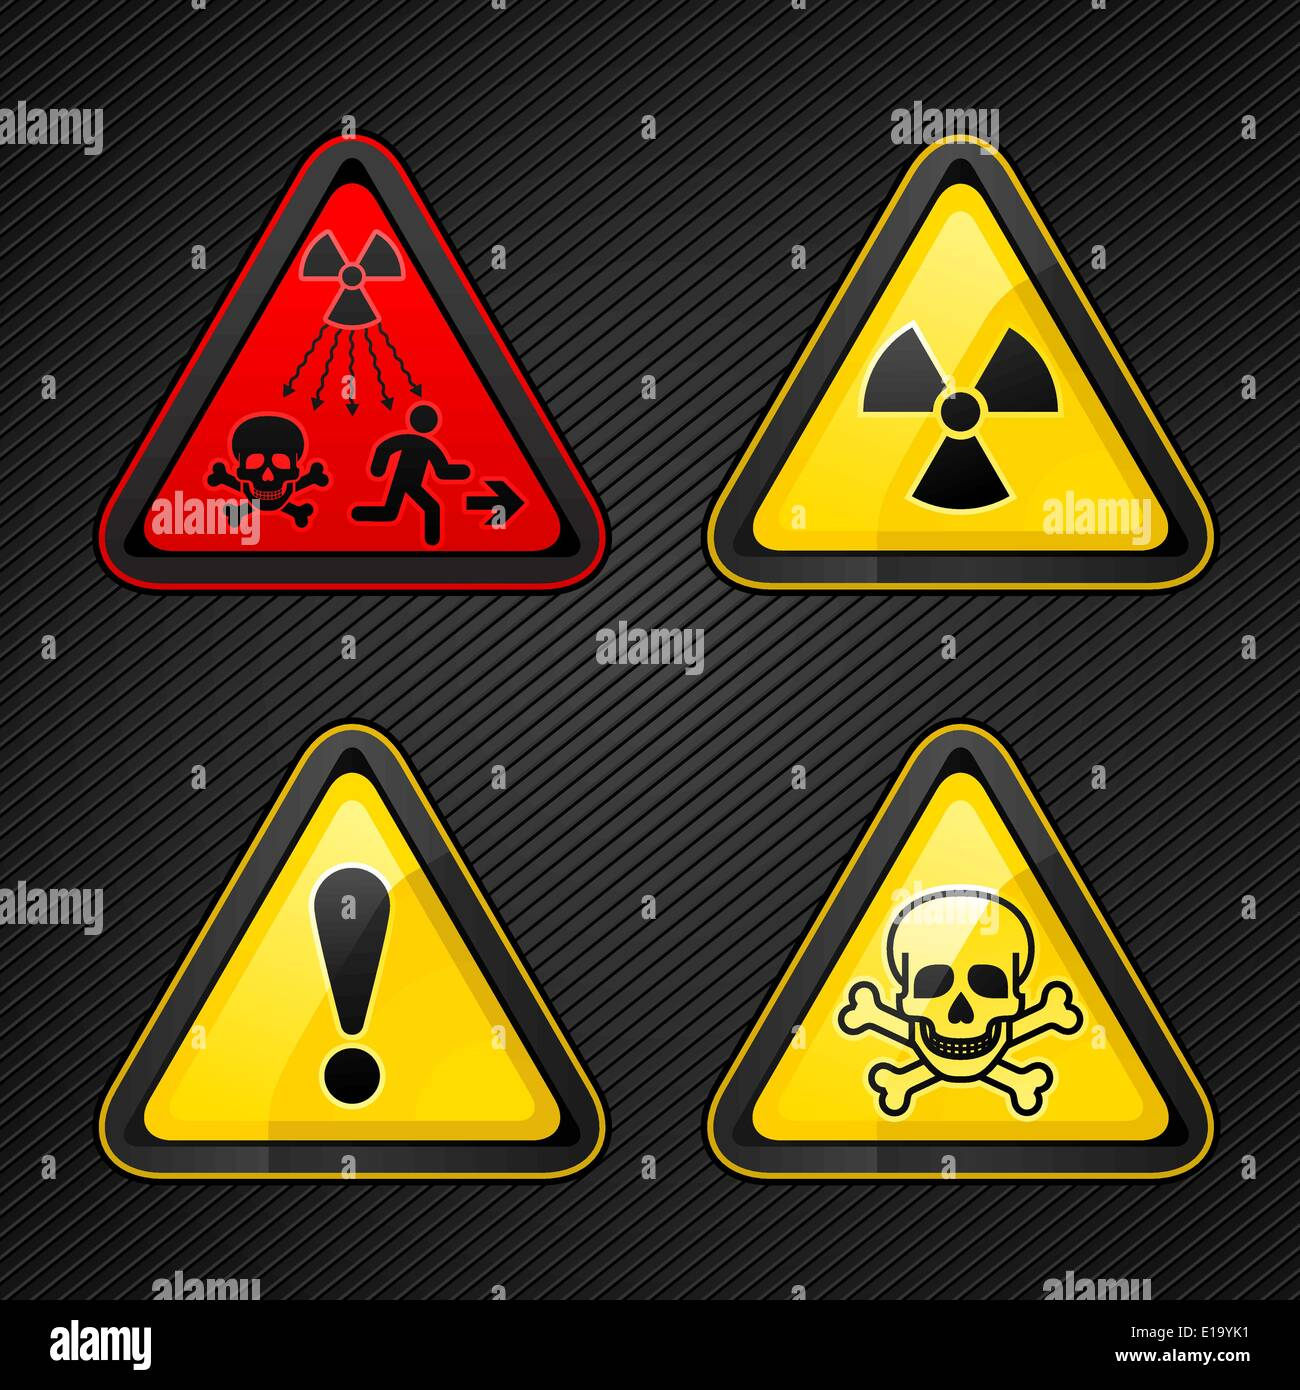 New Radiation Symbol Images Meaning Of Text Symbols